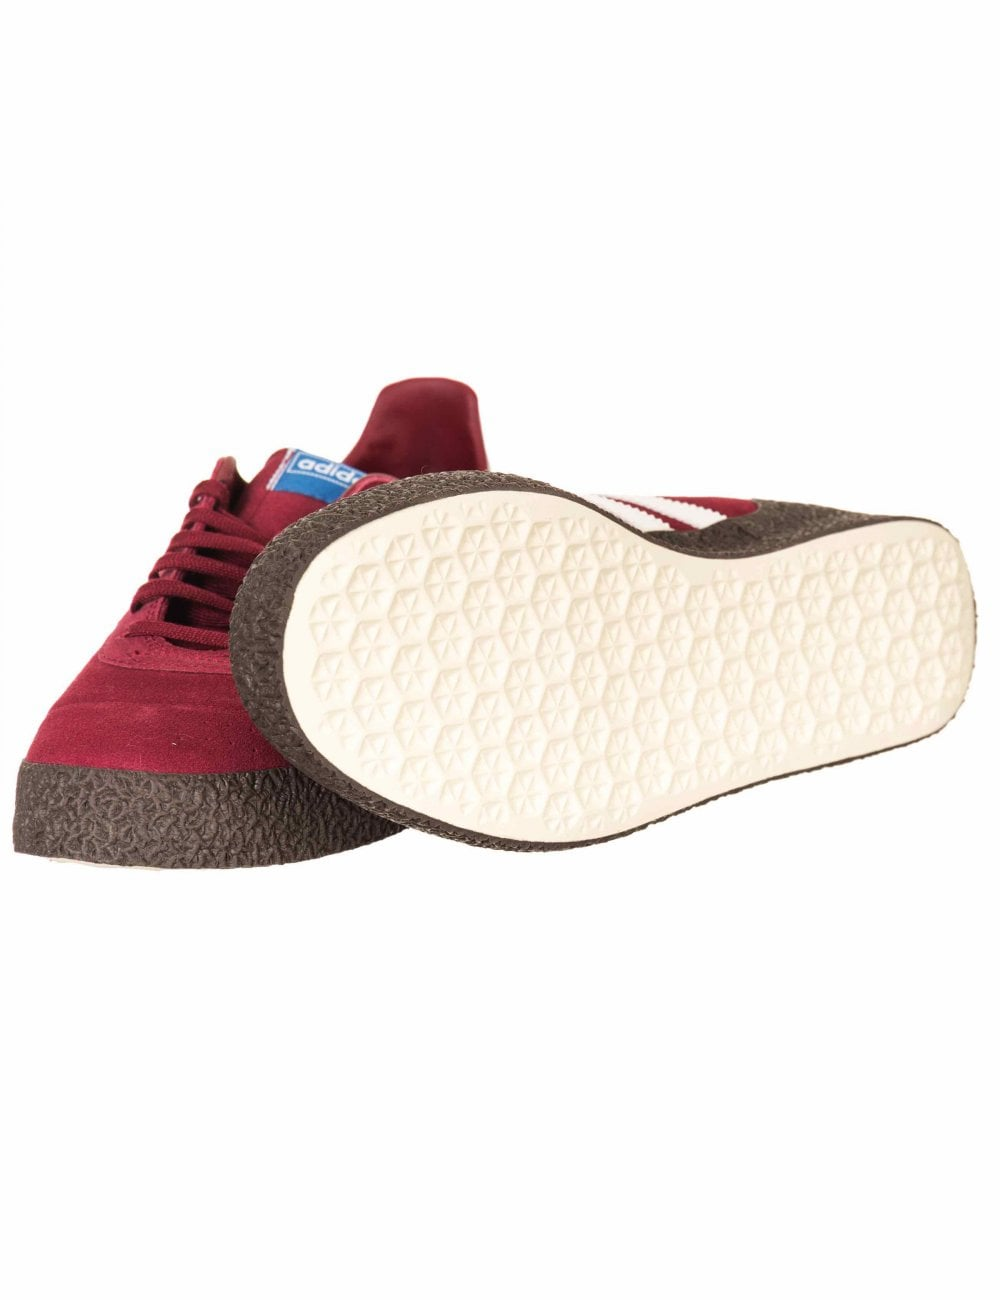 8185680487c120 Adidas Originals Montreal  76 Trainers - Noble Maroon Off White ...